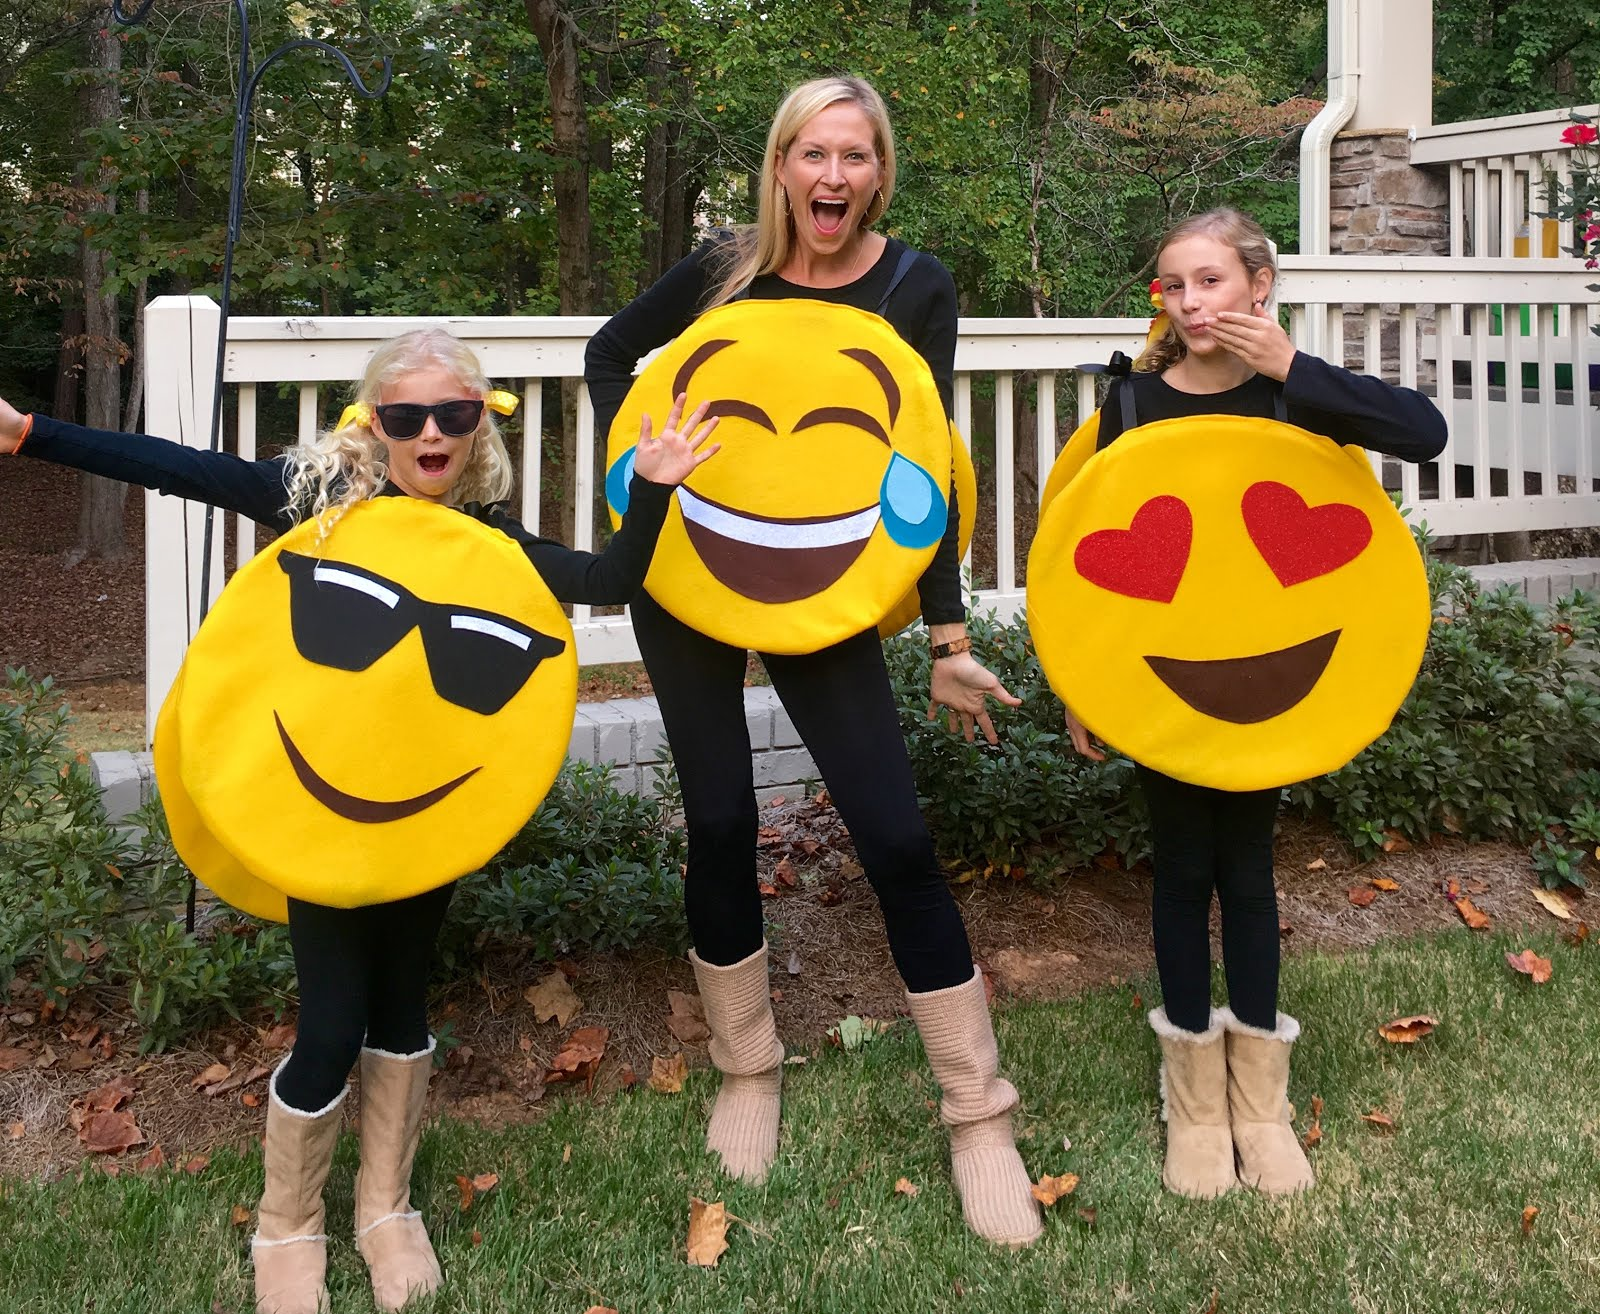 Magnolia mamas diy emoji costume now we are all set for their sports costume parties and for the real deal trick or treating on monday solutioingenieria Gallery